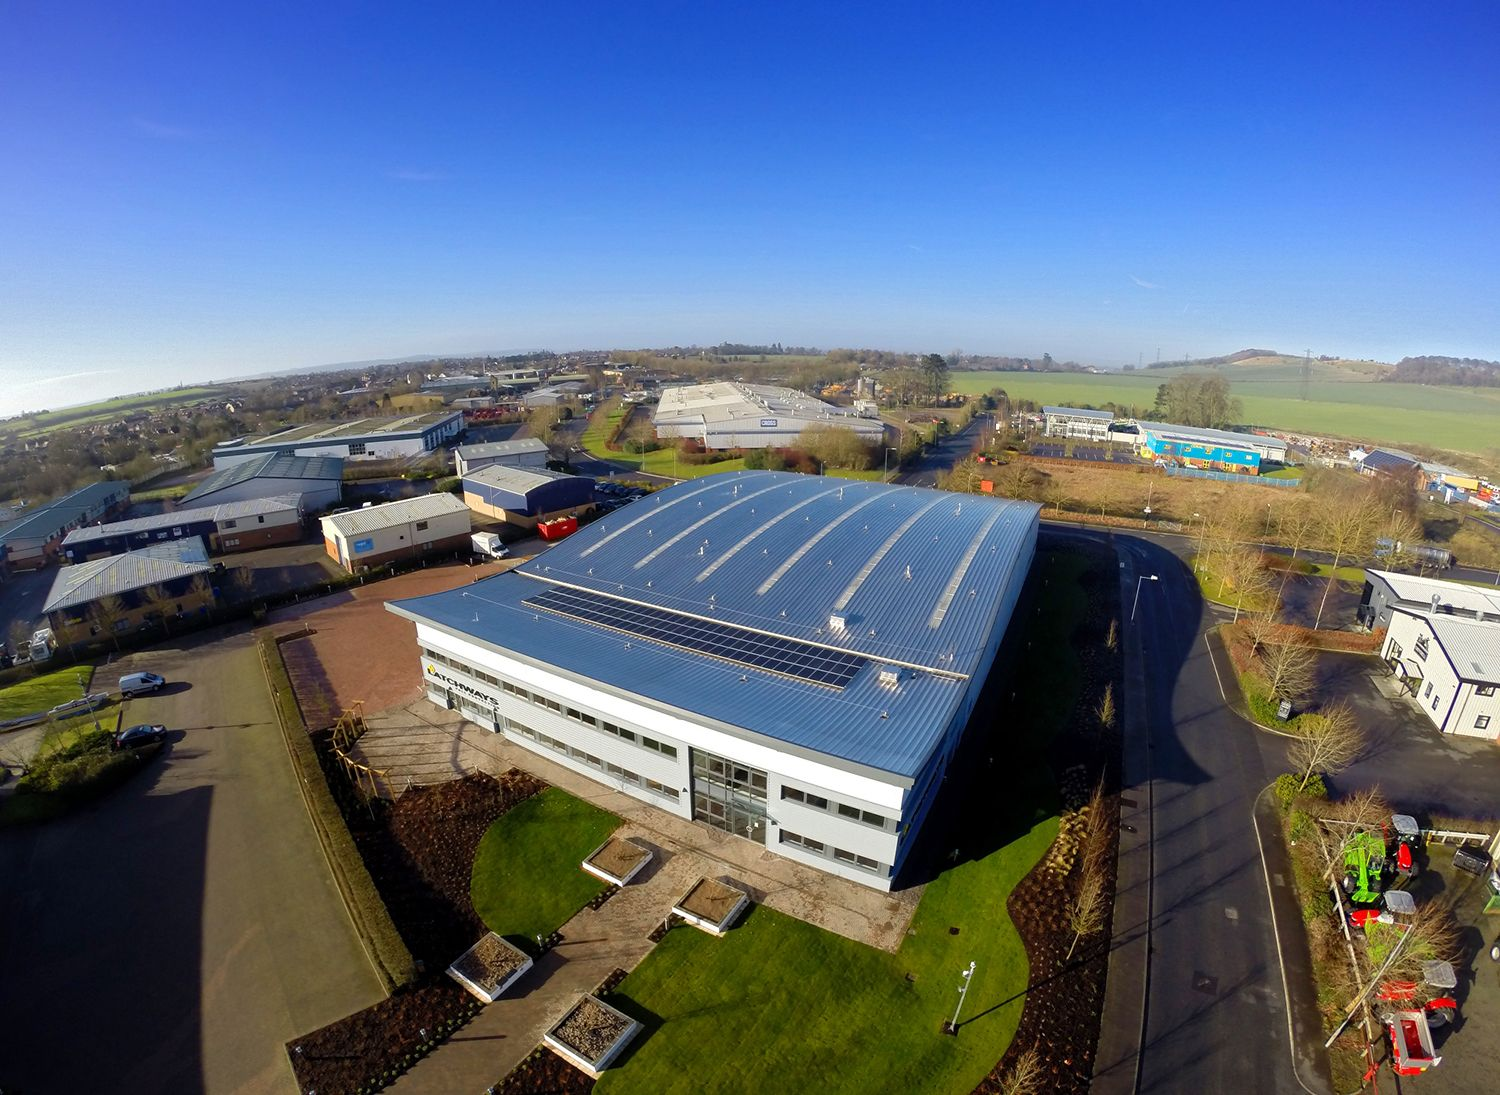 The MSA Devizes facility with solar panels, as seen from overhead